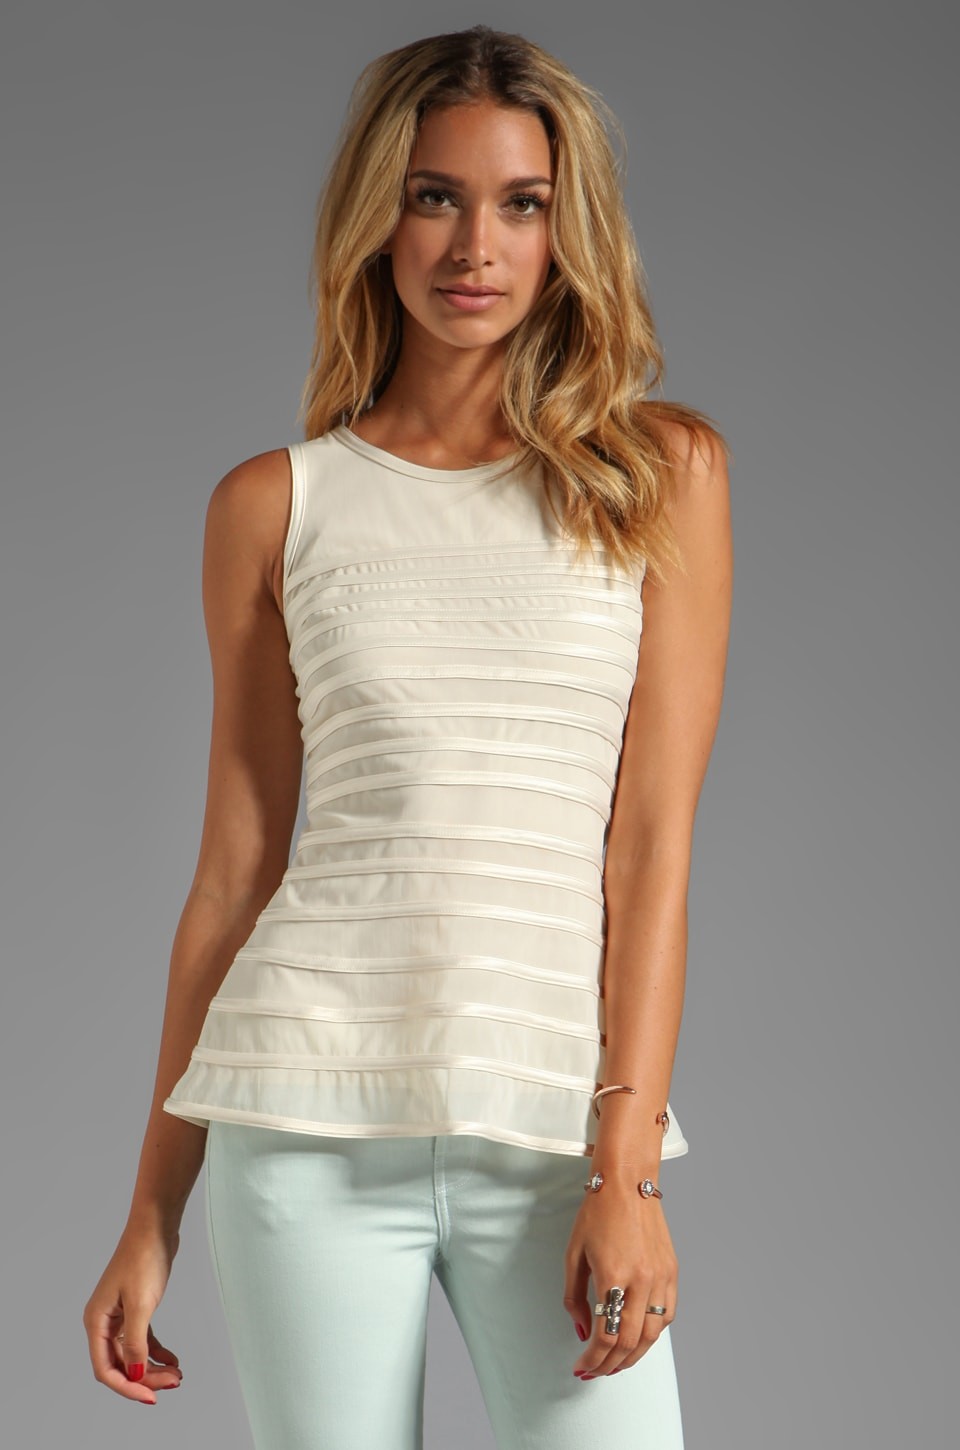 Halston Heritage SL Tank WIth Charmeuse Stripes in Bone